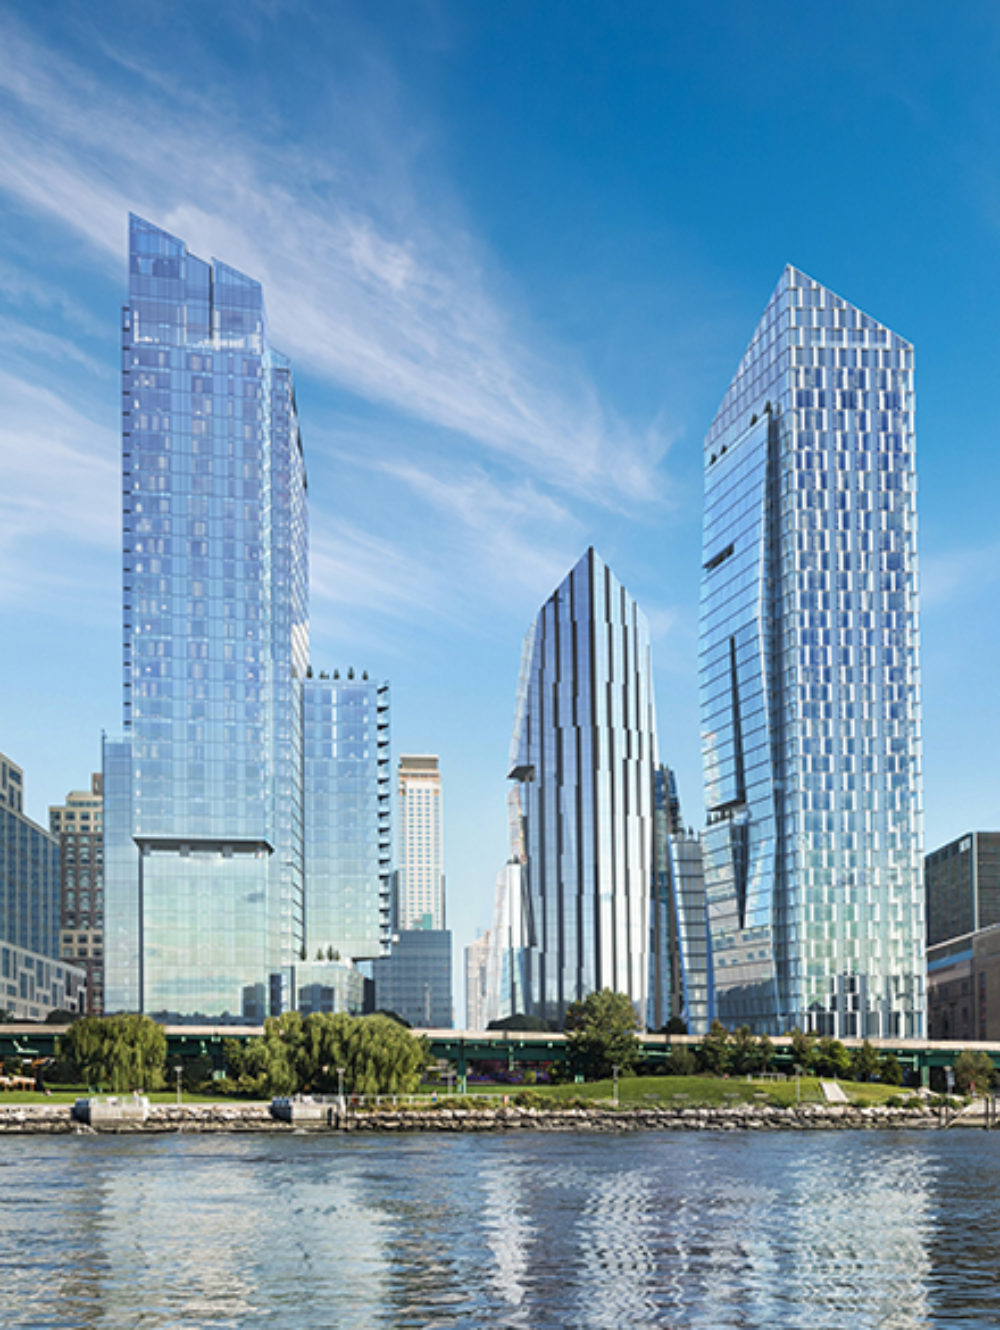 View of Waterline Square Condominiums from the Hudson River in New York City. Riverfront park runs below the towers.